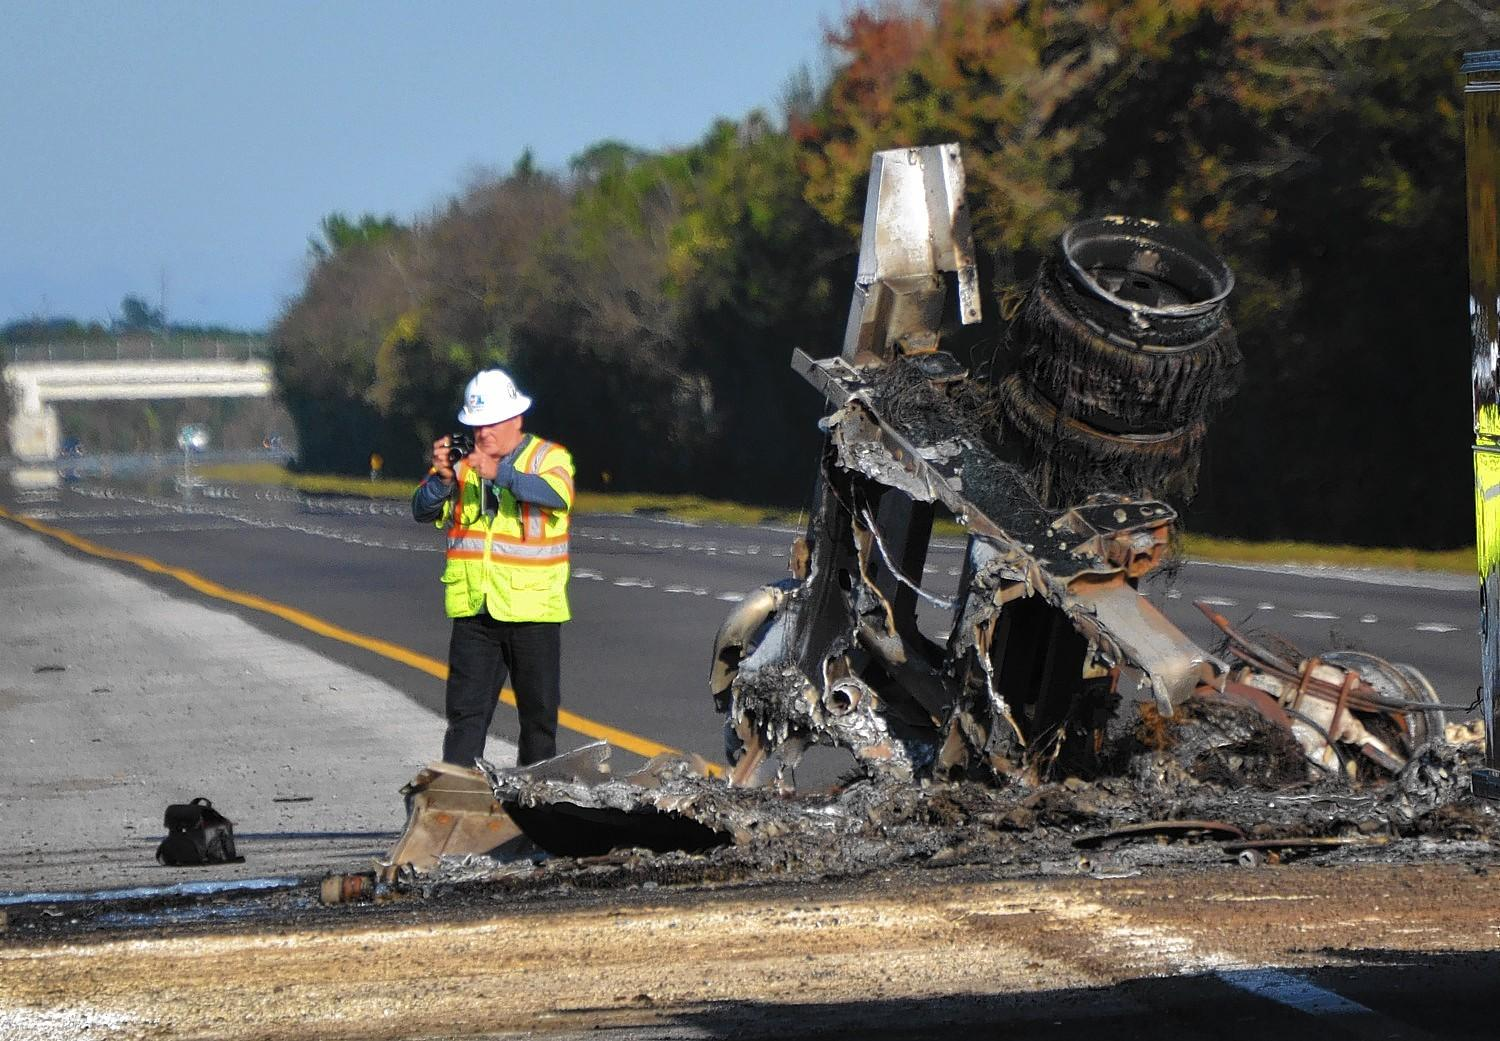 A wreck involving two tractor trailers and resulting in at least one fatality shut down I-95 in both directions in Palm Coast at 3:45 a.m. Tuesday, Dec. 24, 2013. (FlaglerLive photo)